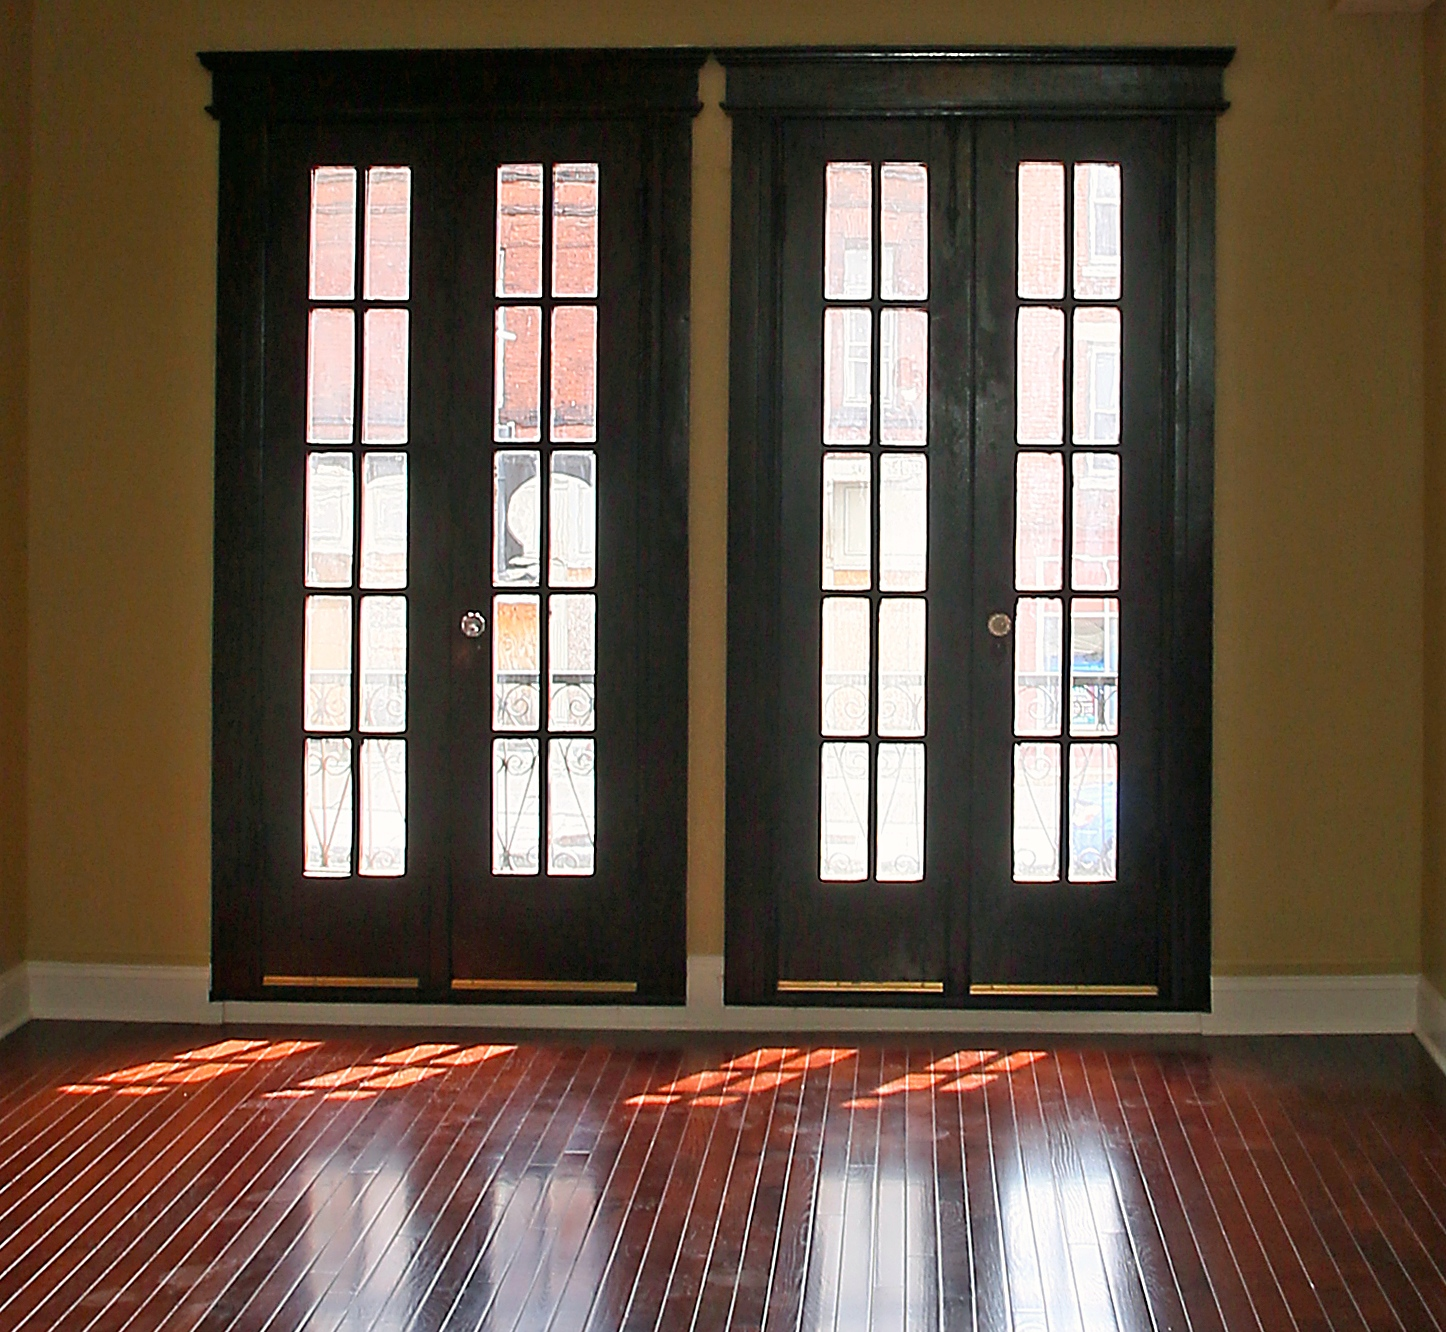 French doors on the second floor bring light into the living room at 537-539 S. Salina St.